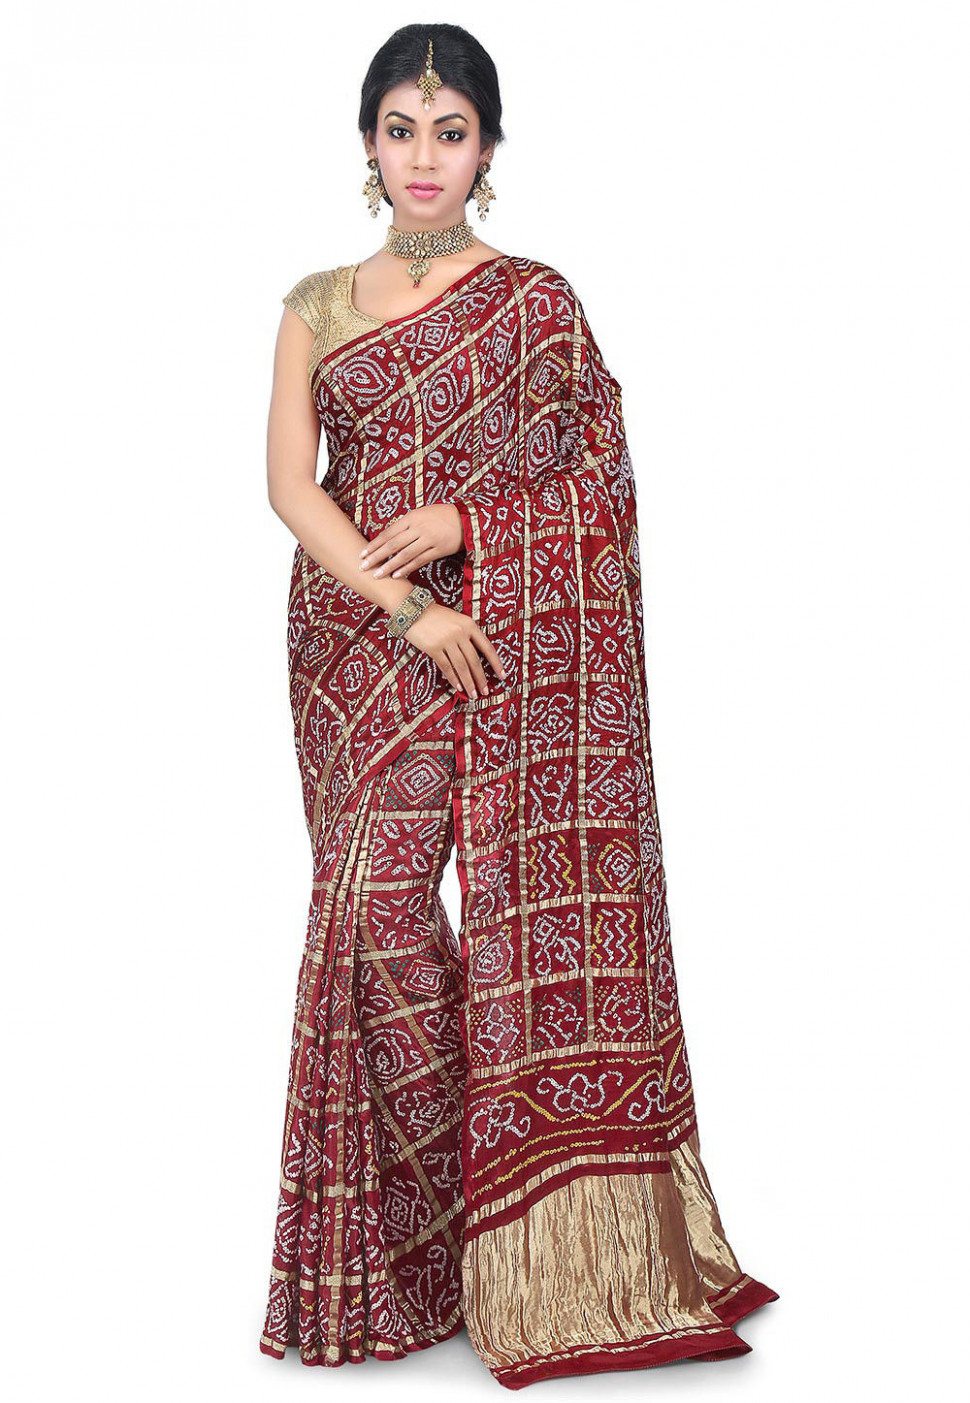 Pure Ghatchola Satin Silk Saree in Maroon : SJN6890